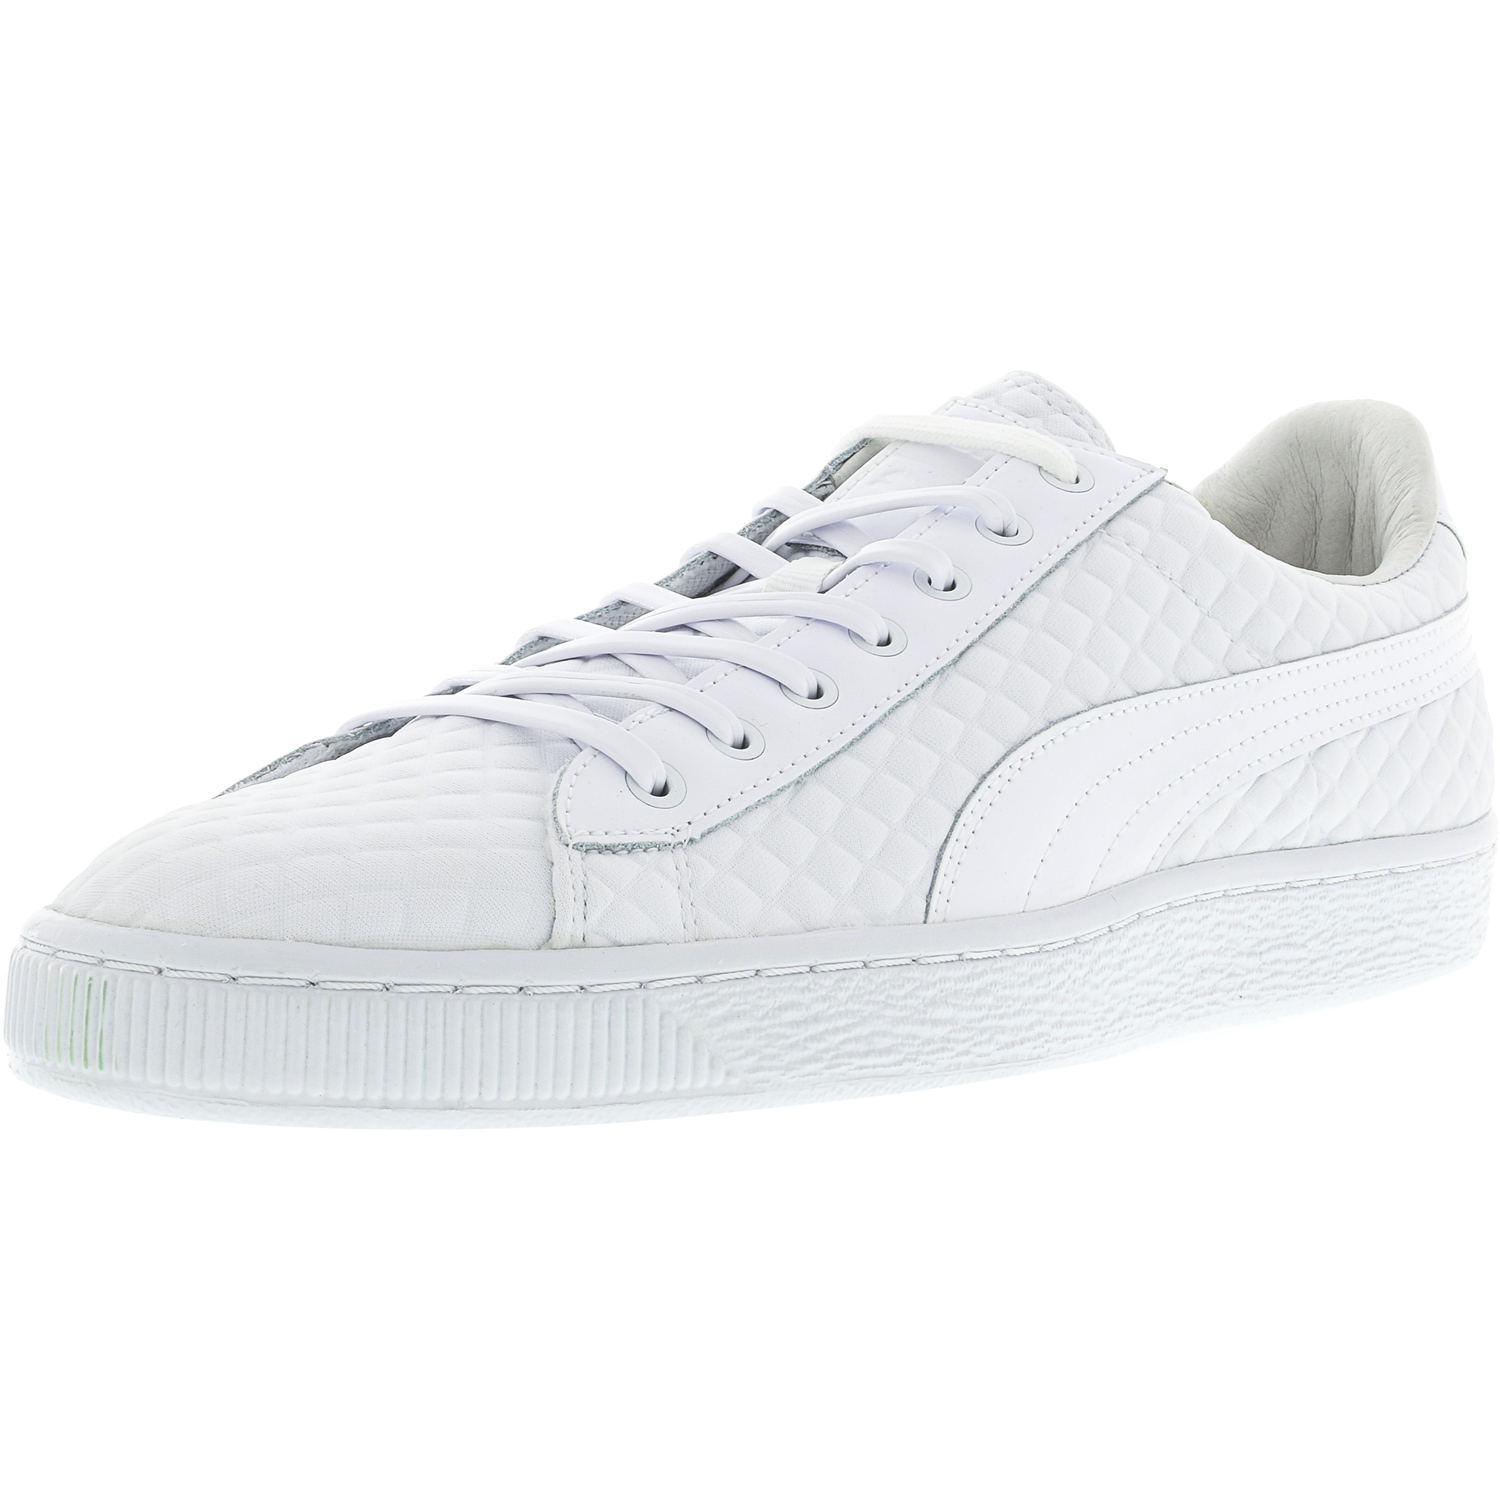 Puma Men's Basket X Meek Bike Life White Ankle-High Fashion Sneaker 10M by Puma